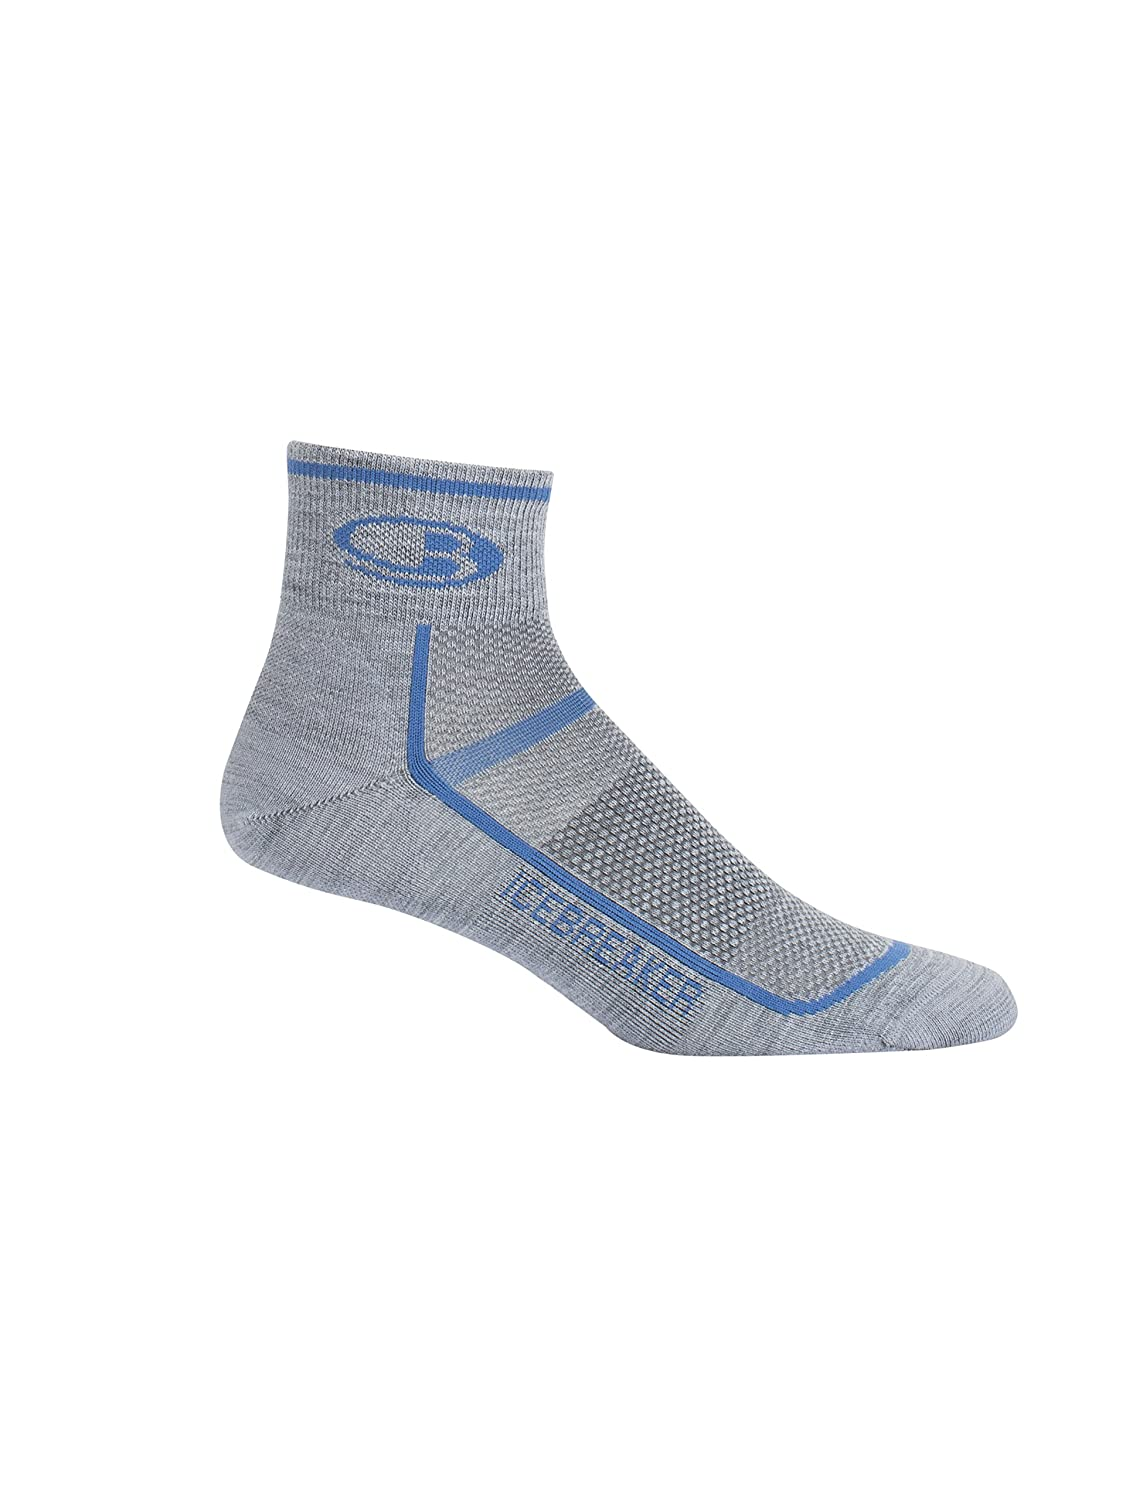 Icebreaker Men's Multisport Ultra Light Mini Socks Icebreaker USA